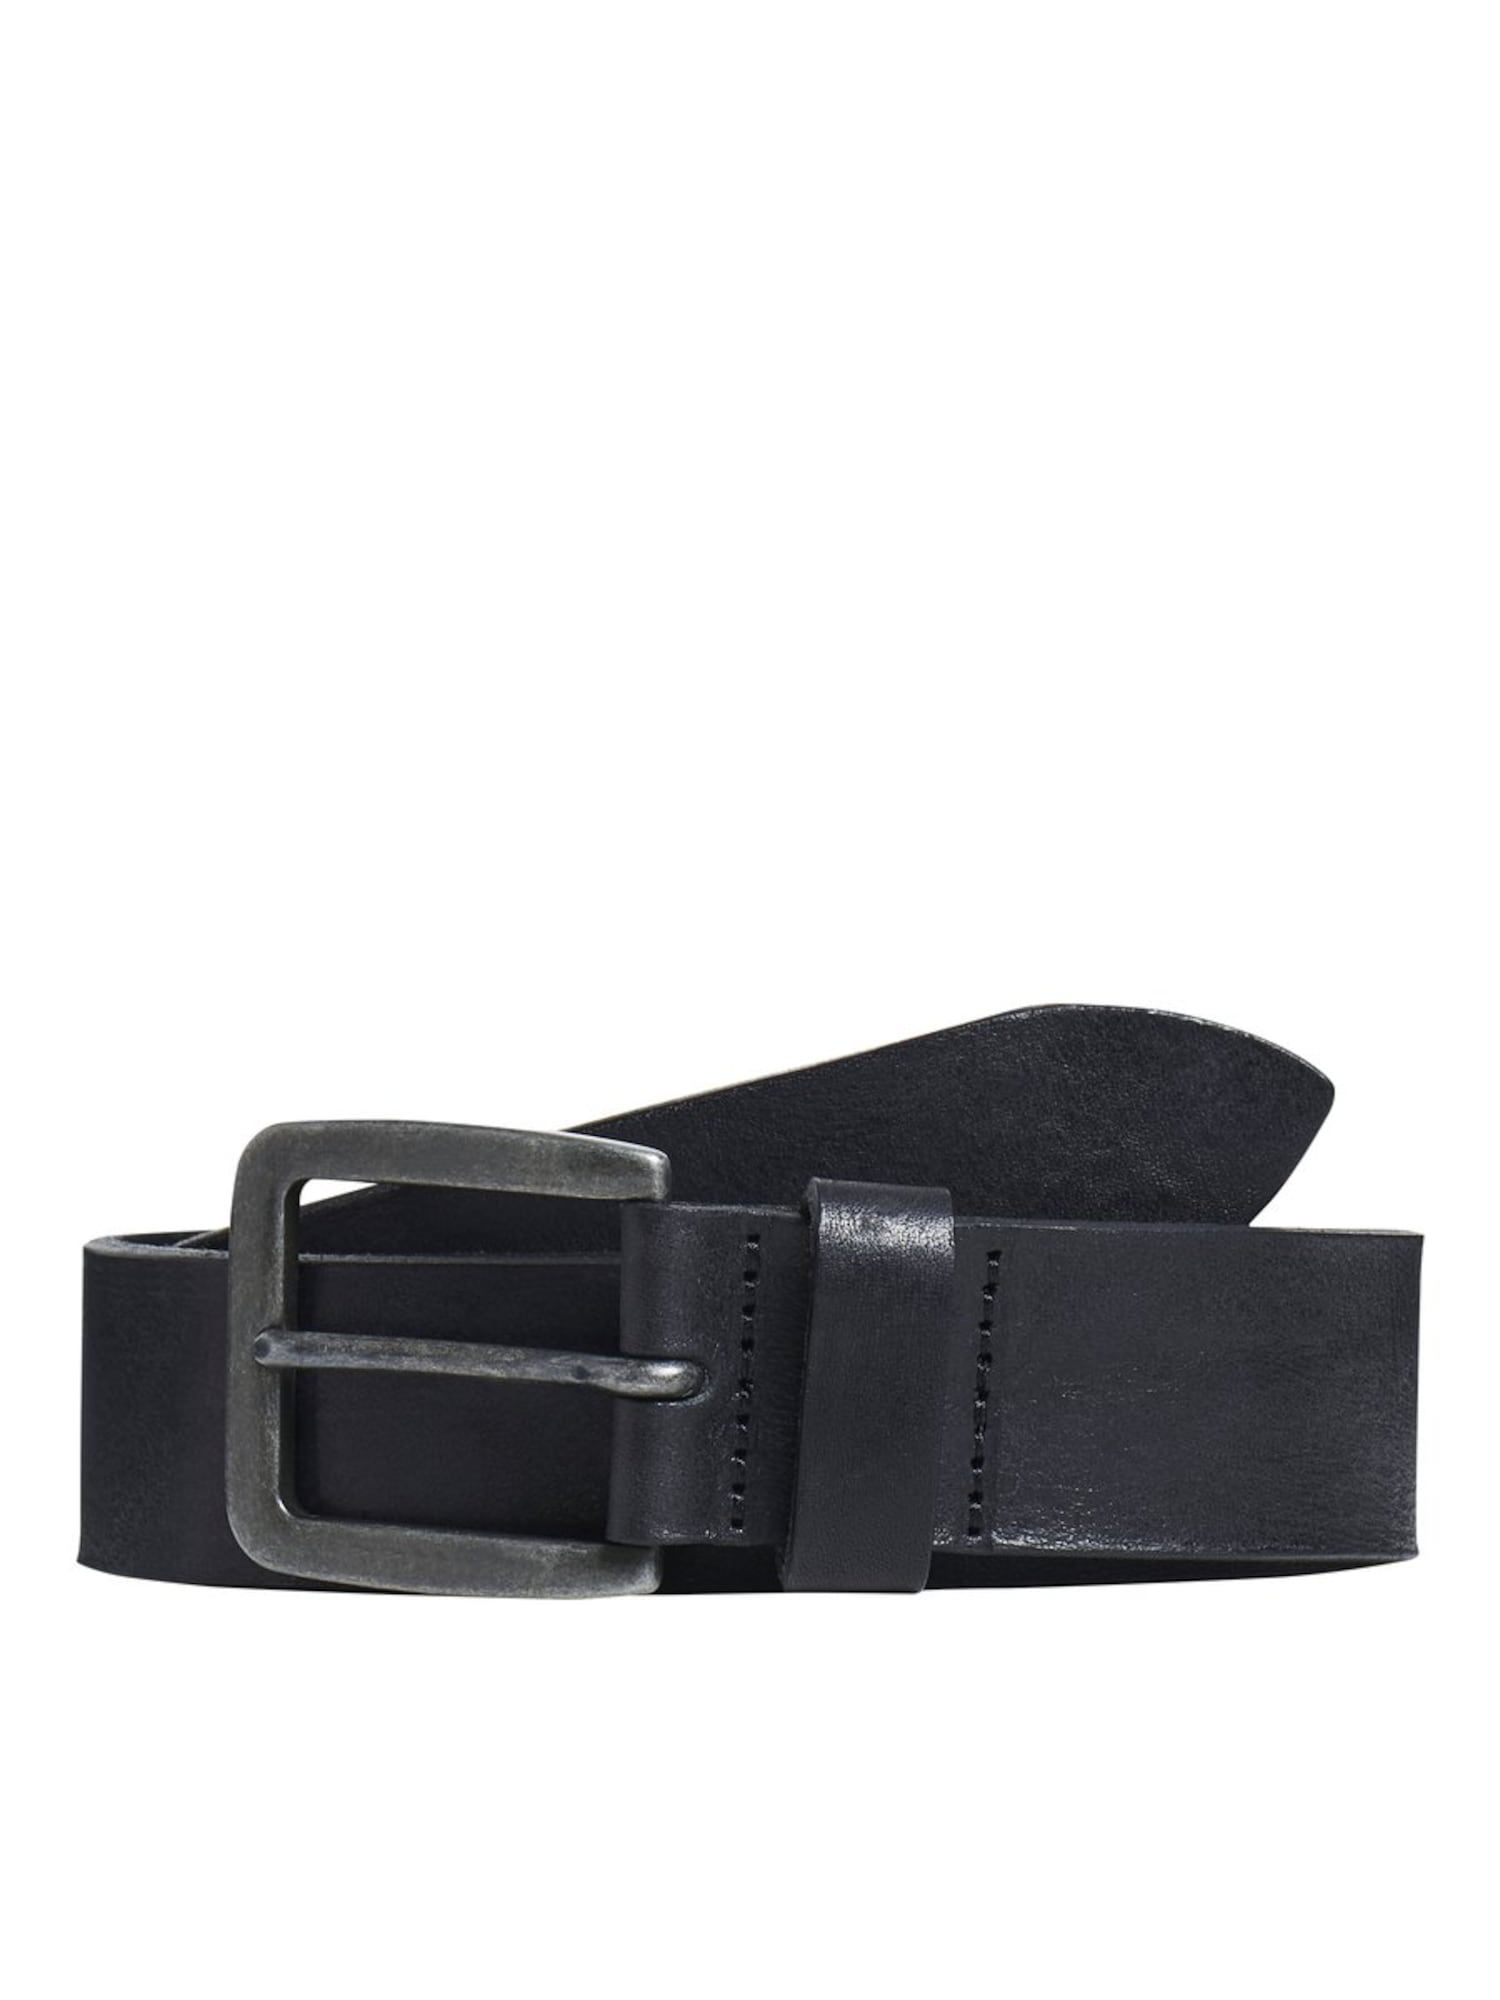 JACK & JONES, Heren Riem, zwart